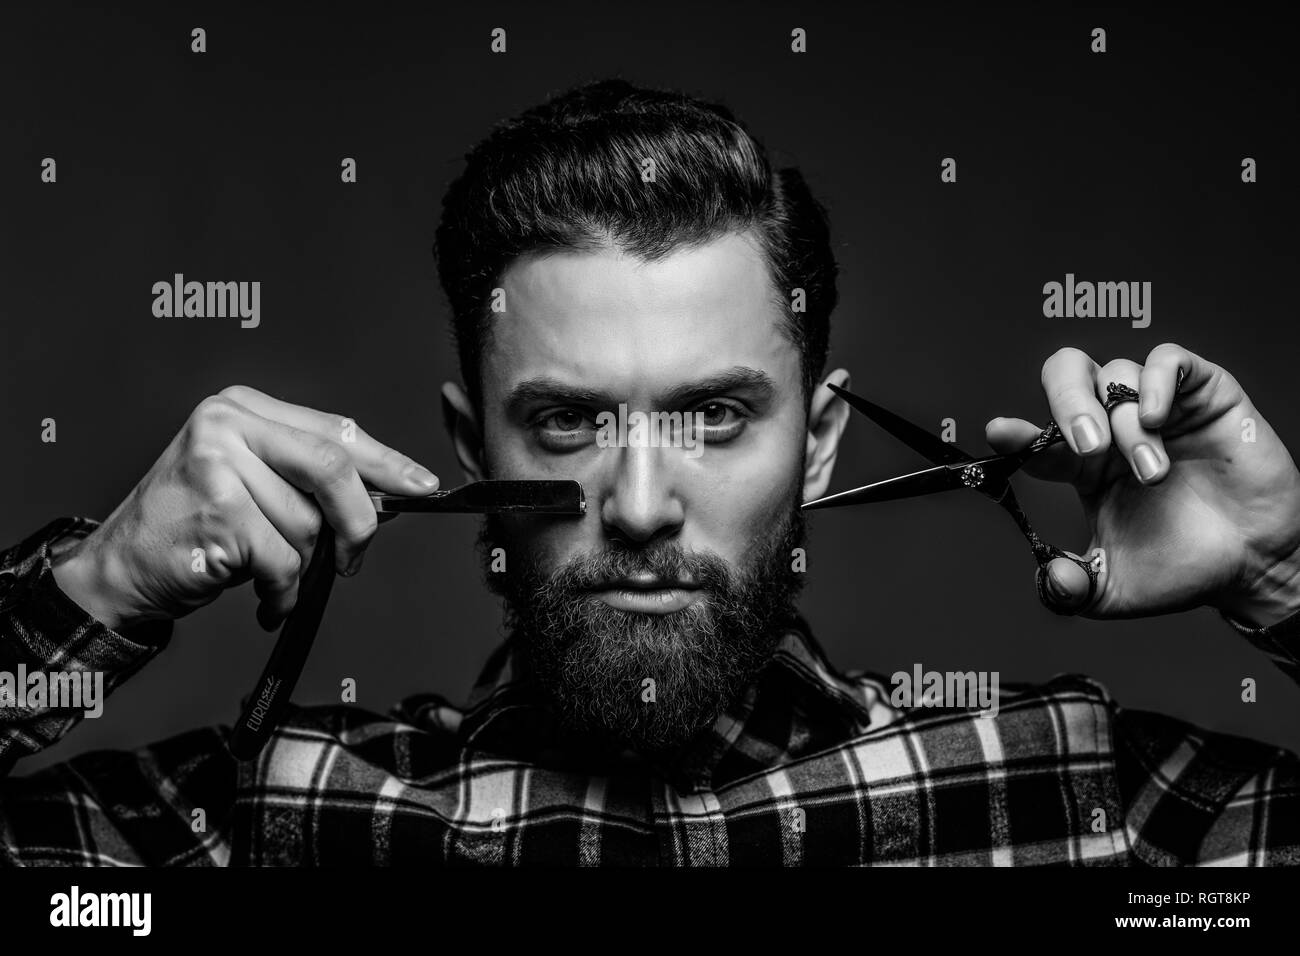 Man hairdresser in a plaid shirt holding a sharp professional scissors. Close-up - Stock Image